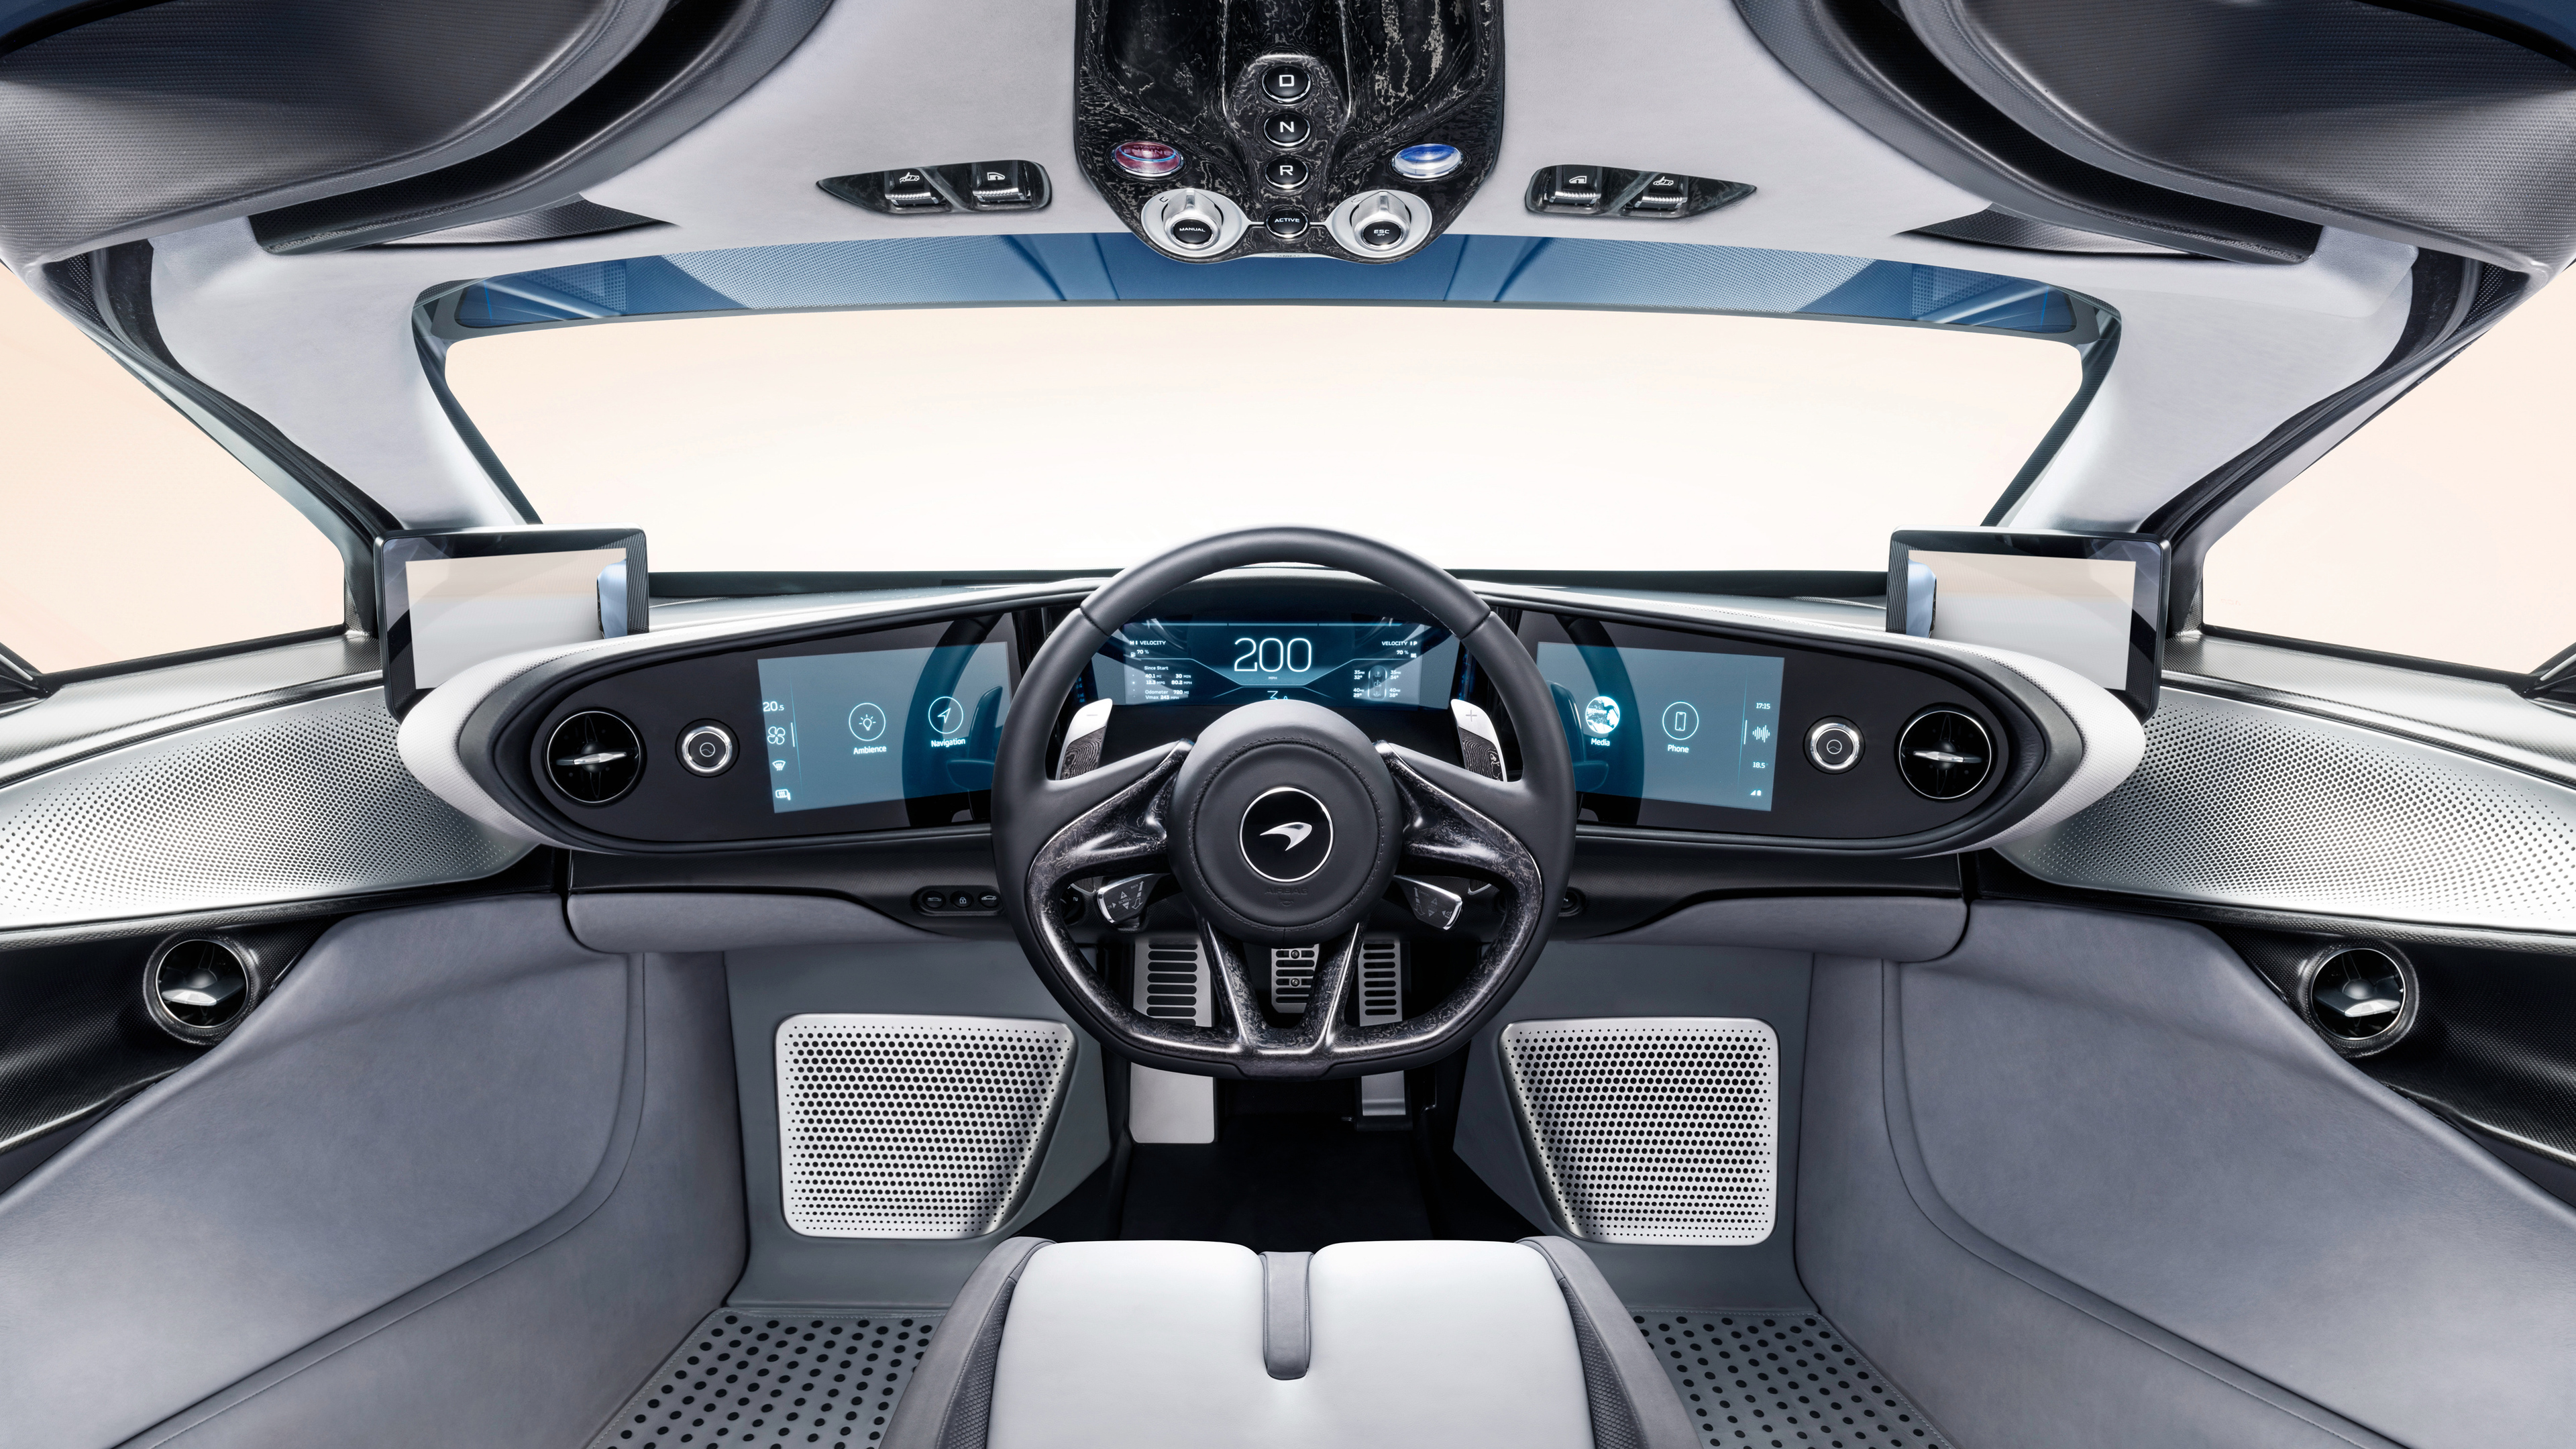 mclaren speedtail 2018 interior 1541969018 - McLaren Speedtail 2018 Interior - mclaren speedtail wallpapers, interior wallpapers, hd-wallpapers, cars wallpapers, 4k-wallpapers, 2018 cars wallpapers